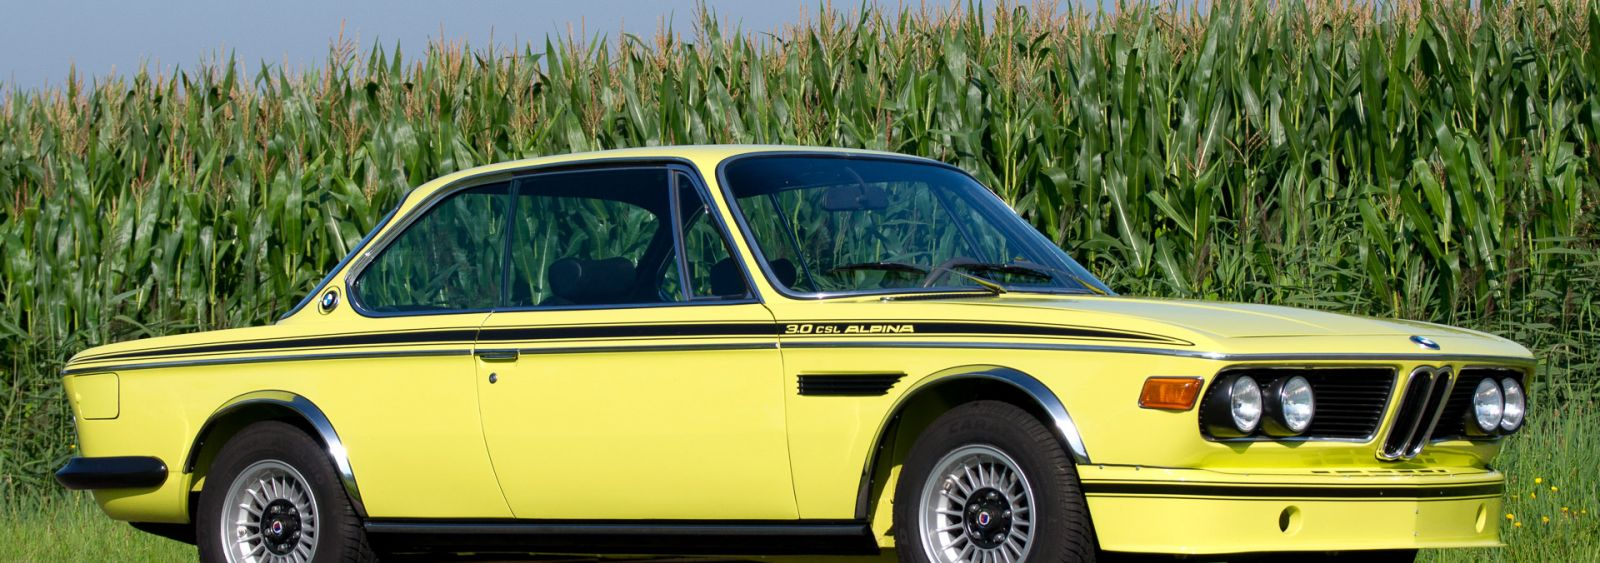 BMW 3.0 CSL Alpina, 1971 - Welcome to ClassiCarGarage